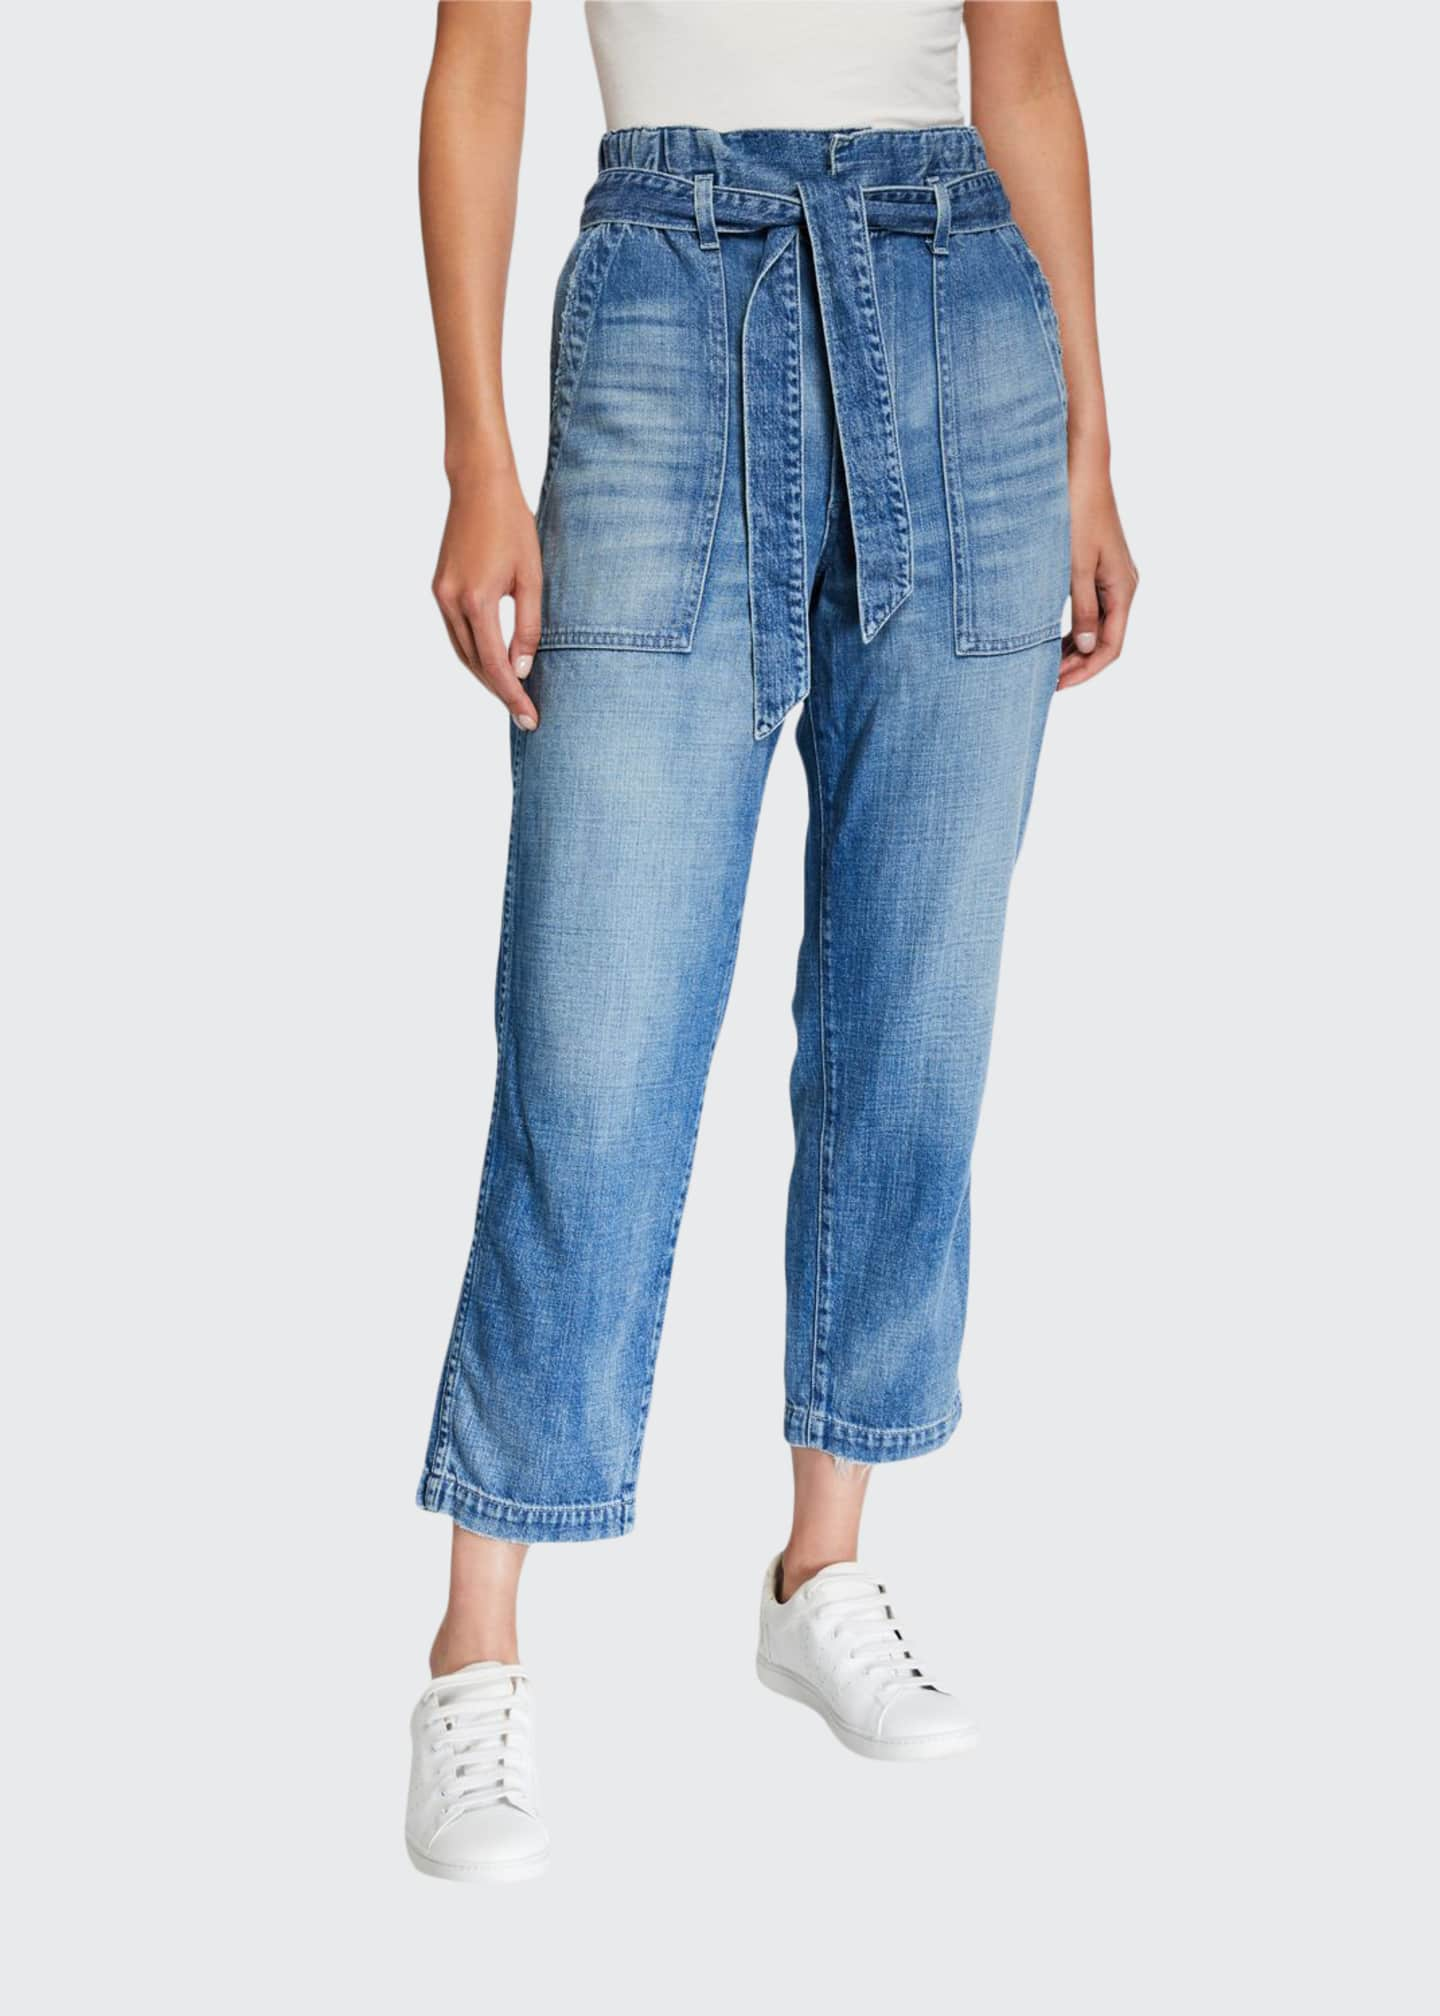 AMO Denim Belted Straight-Leg Paperbag Cropped Jeans